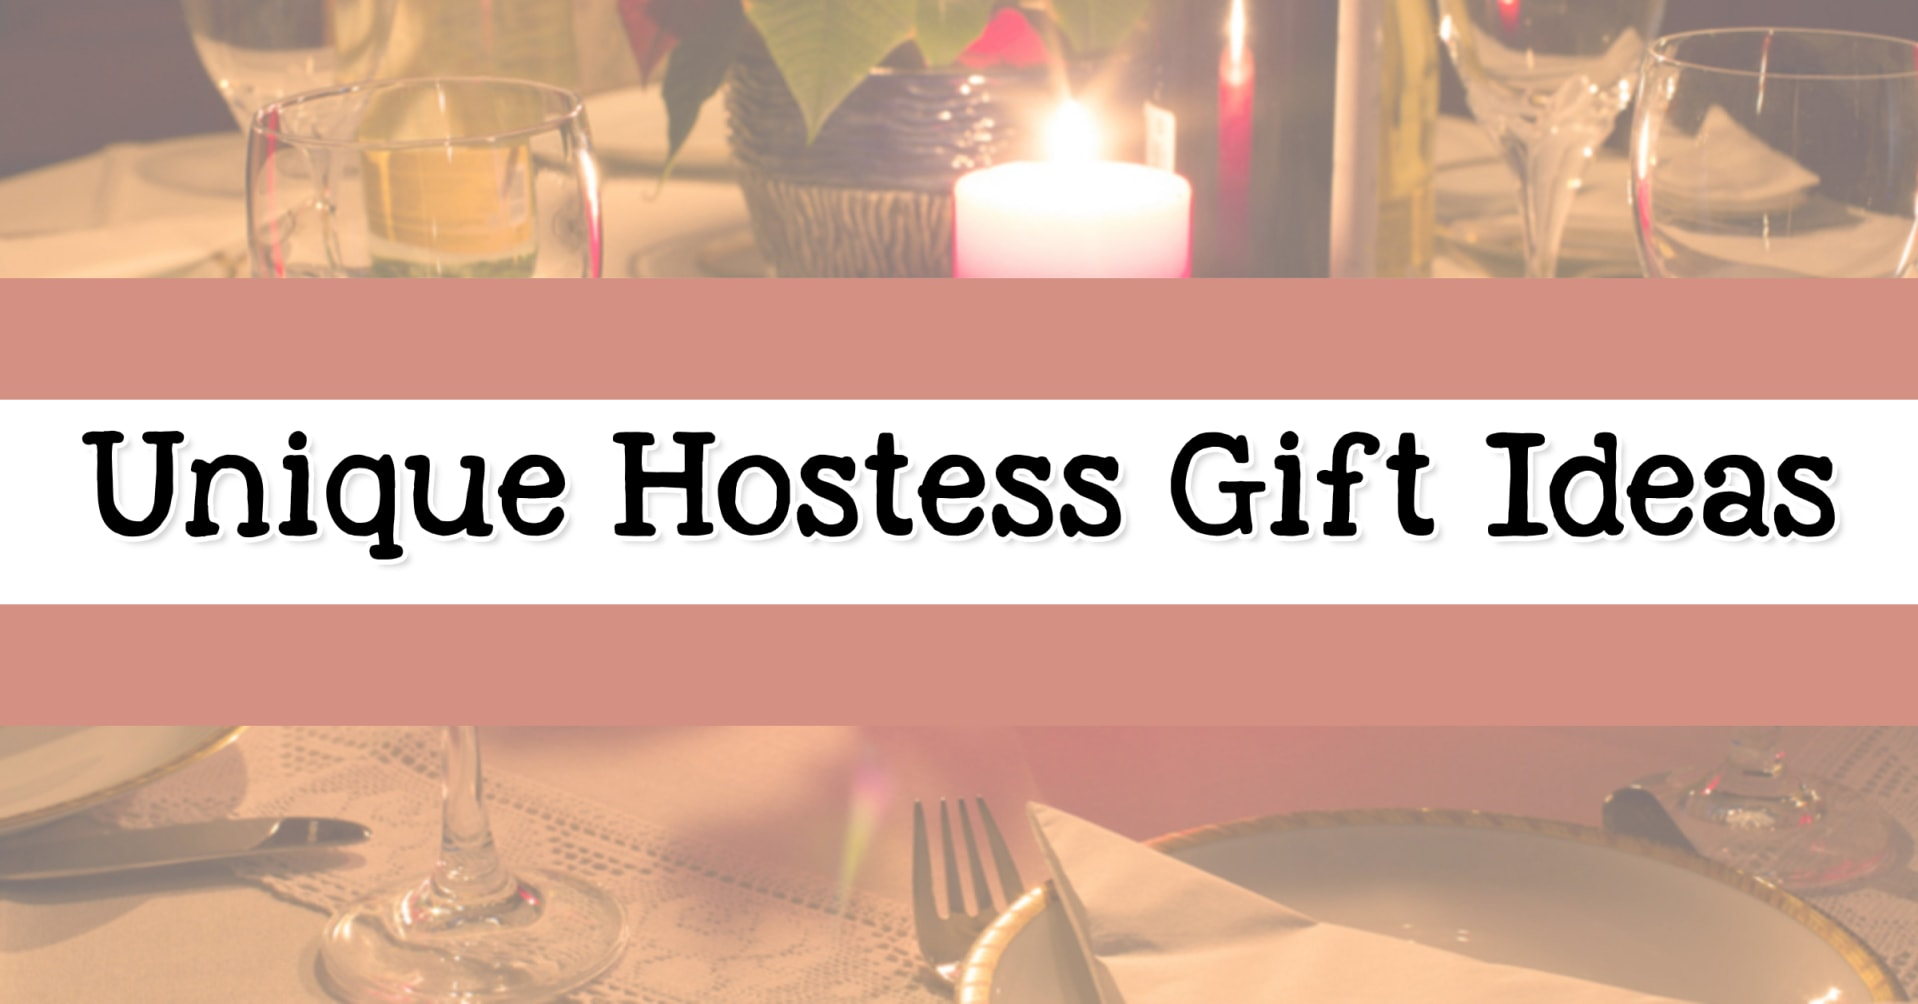 Hostess Gifts - best inexpensive hostess gifts and homemade hostess gifts - luxury hostess gifts, personalized hostess gifts, hostess gifts for baby shower and hostess gift ideas for a houseguest. These unique gifts to say thank you and houseguest thank you gift ideas are thoughtful ideas for bridal shower gifts, weekend guest gifts, Thanksgiving hostess gifts and dinner party hostess gifts.